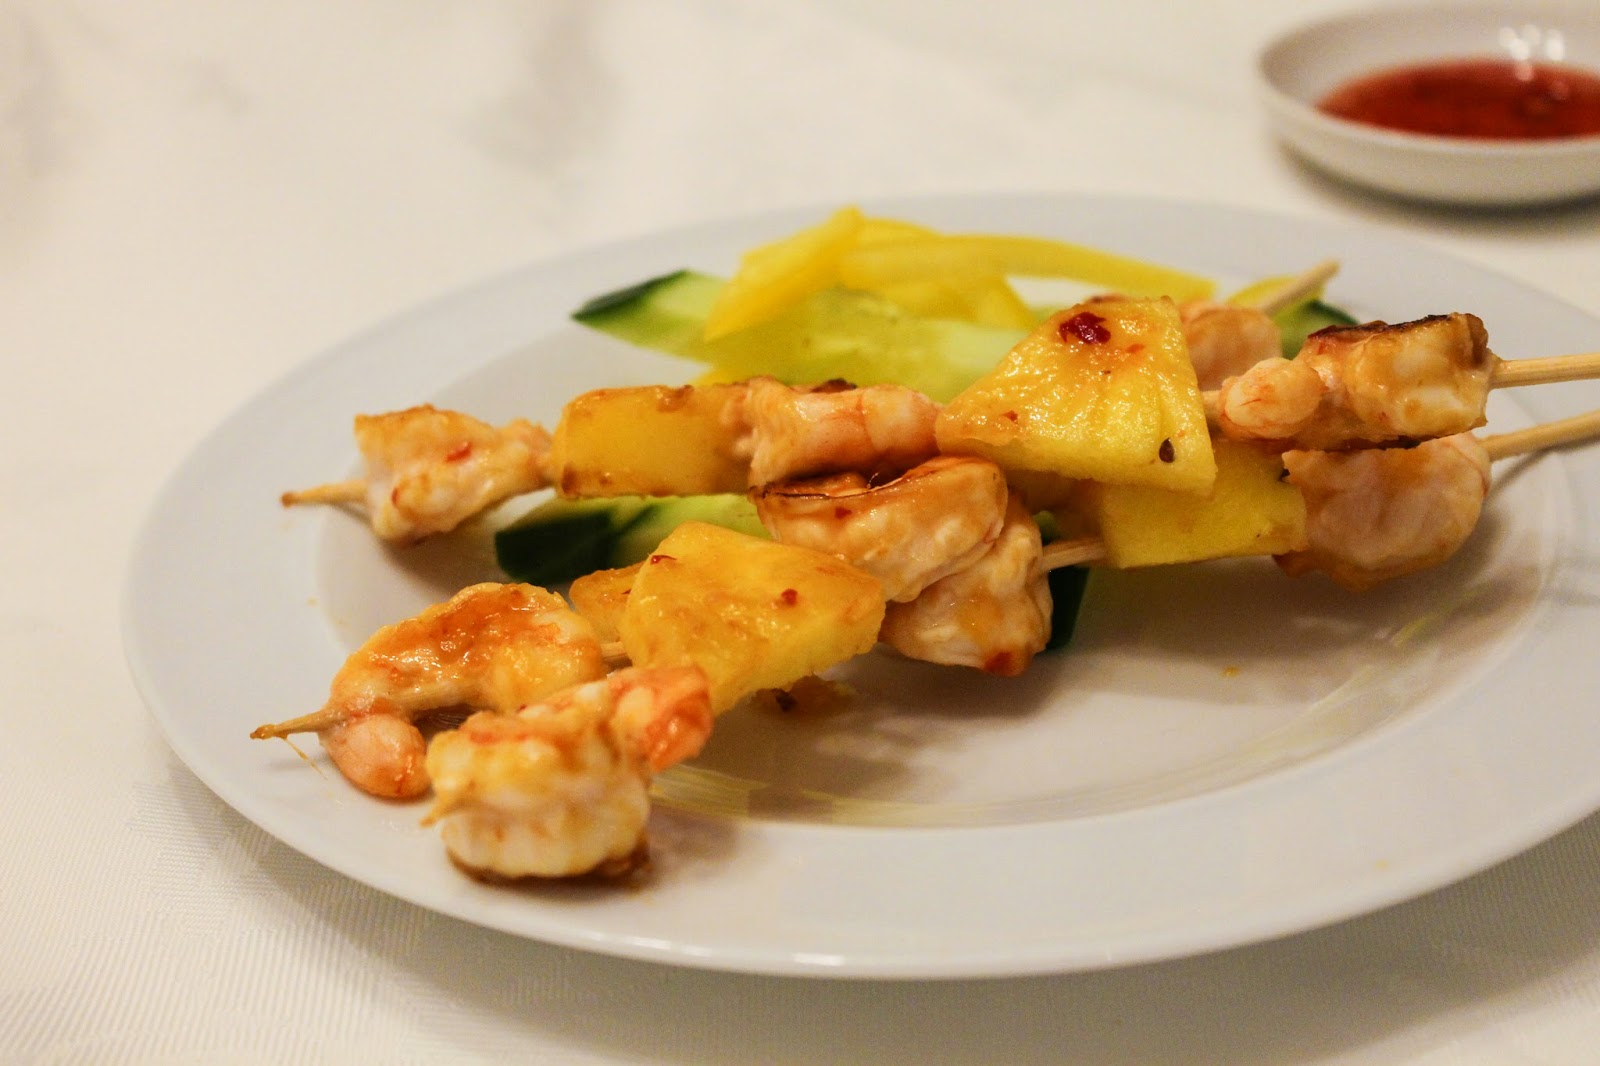 Prawn and Pineapple Skewers